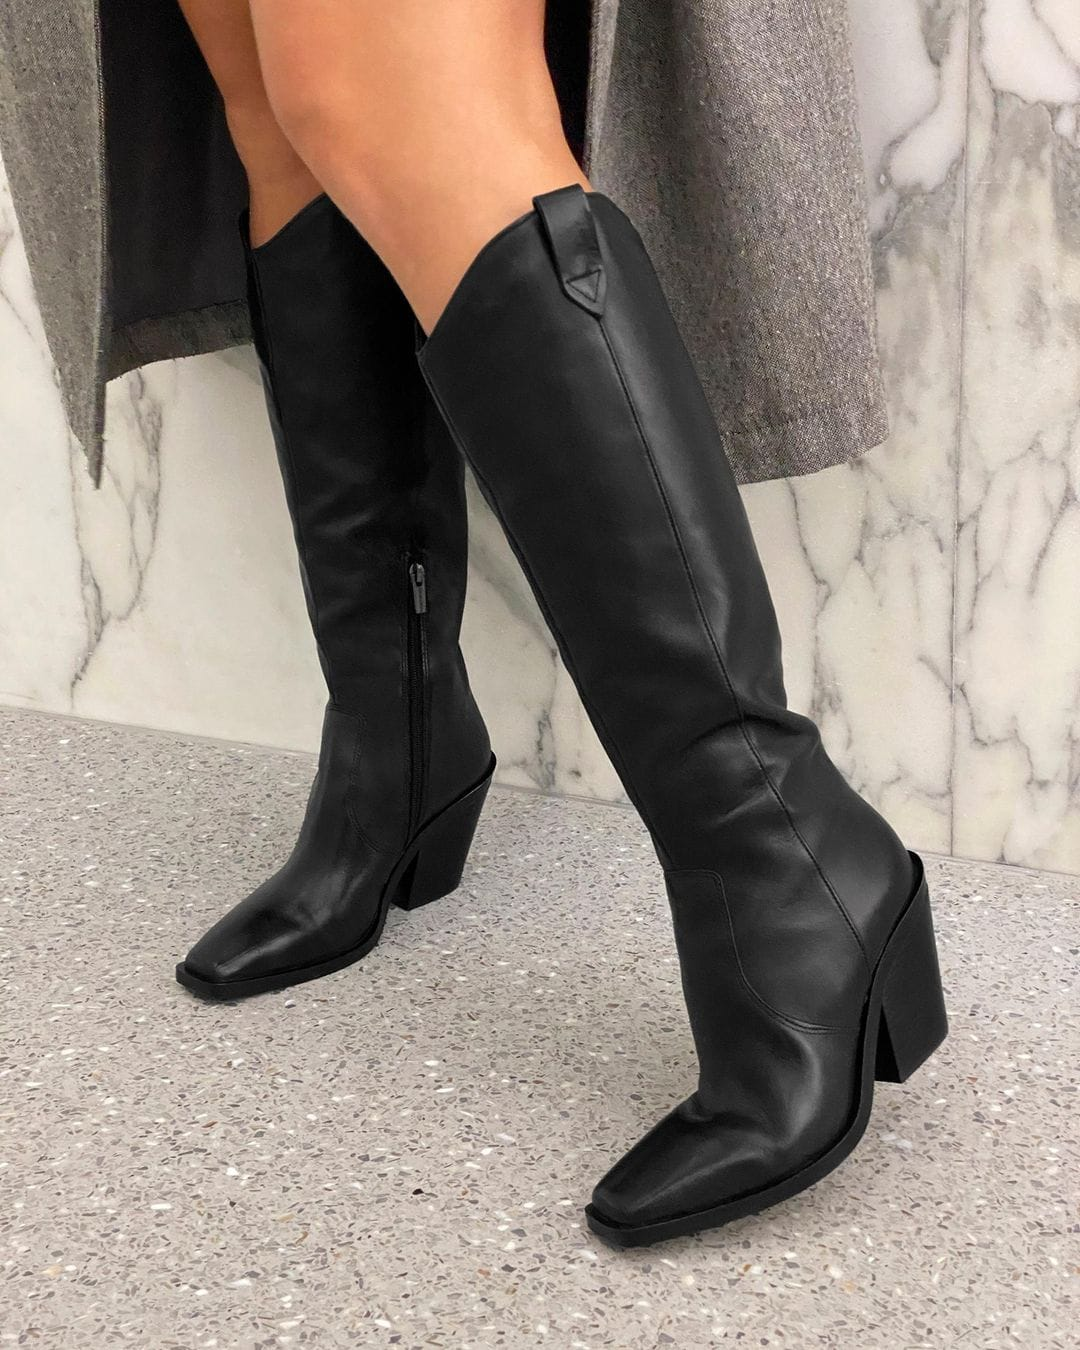 This black knee-high boot offers a subtle Western note with its curved topline, while a sleek squared-off toe and slanted, stacked heel gives it true city appeal